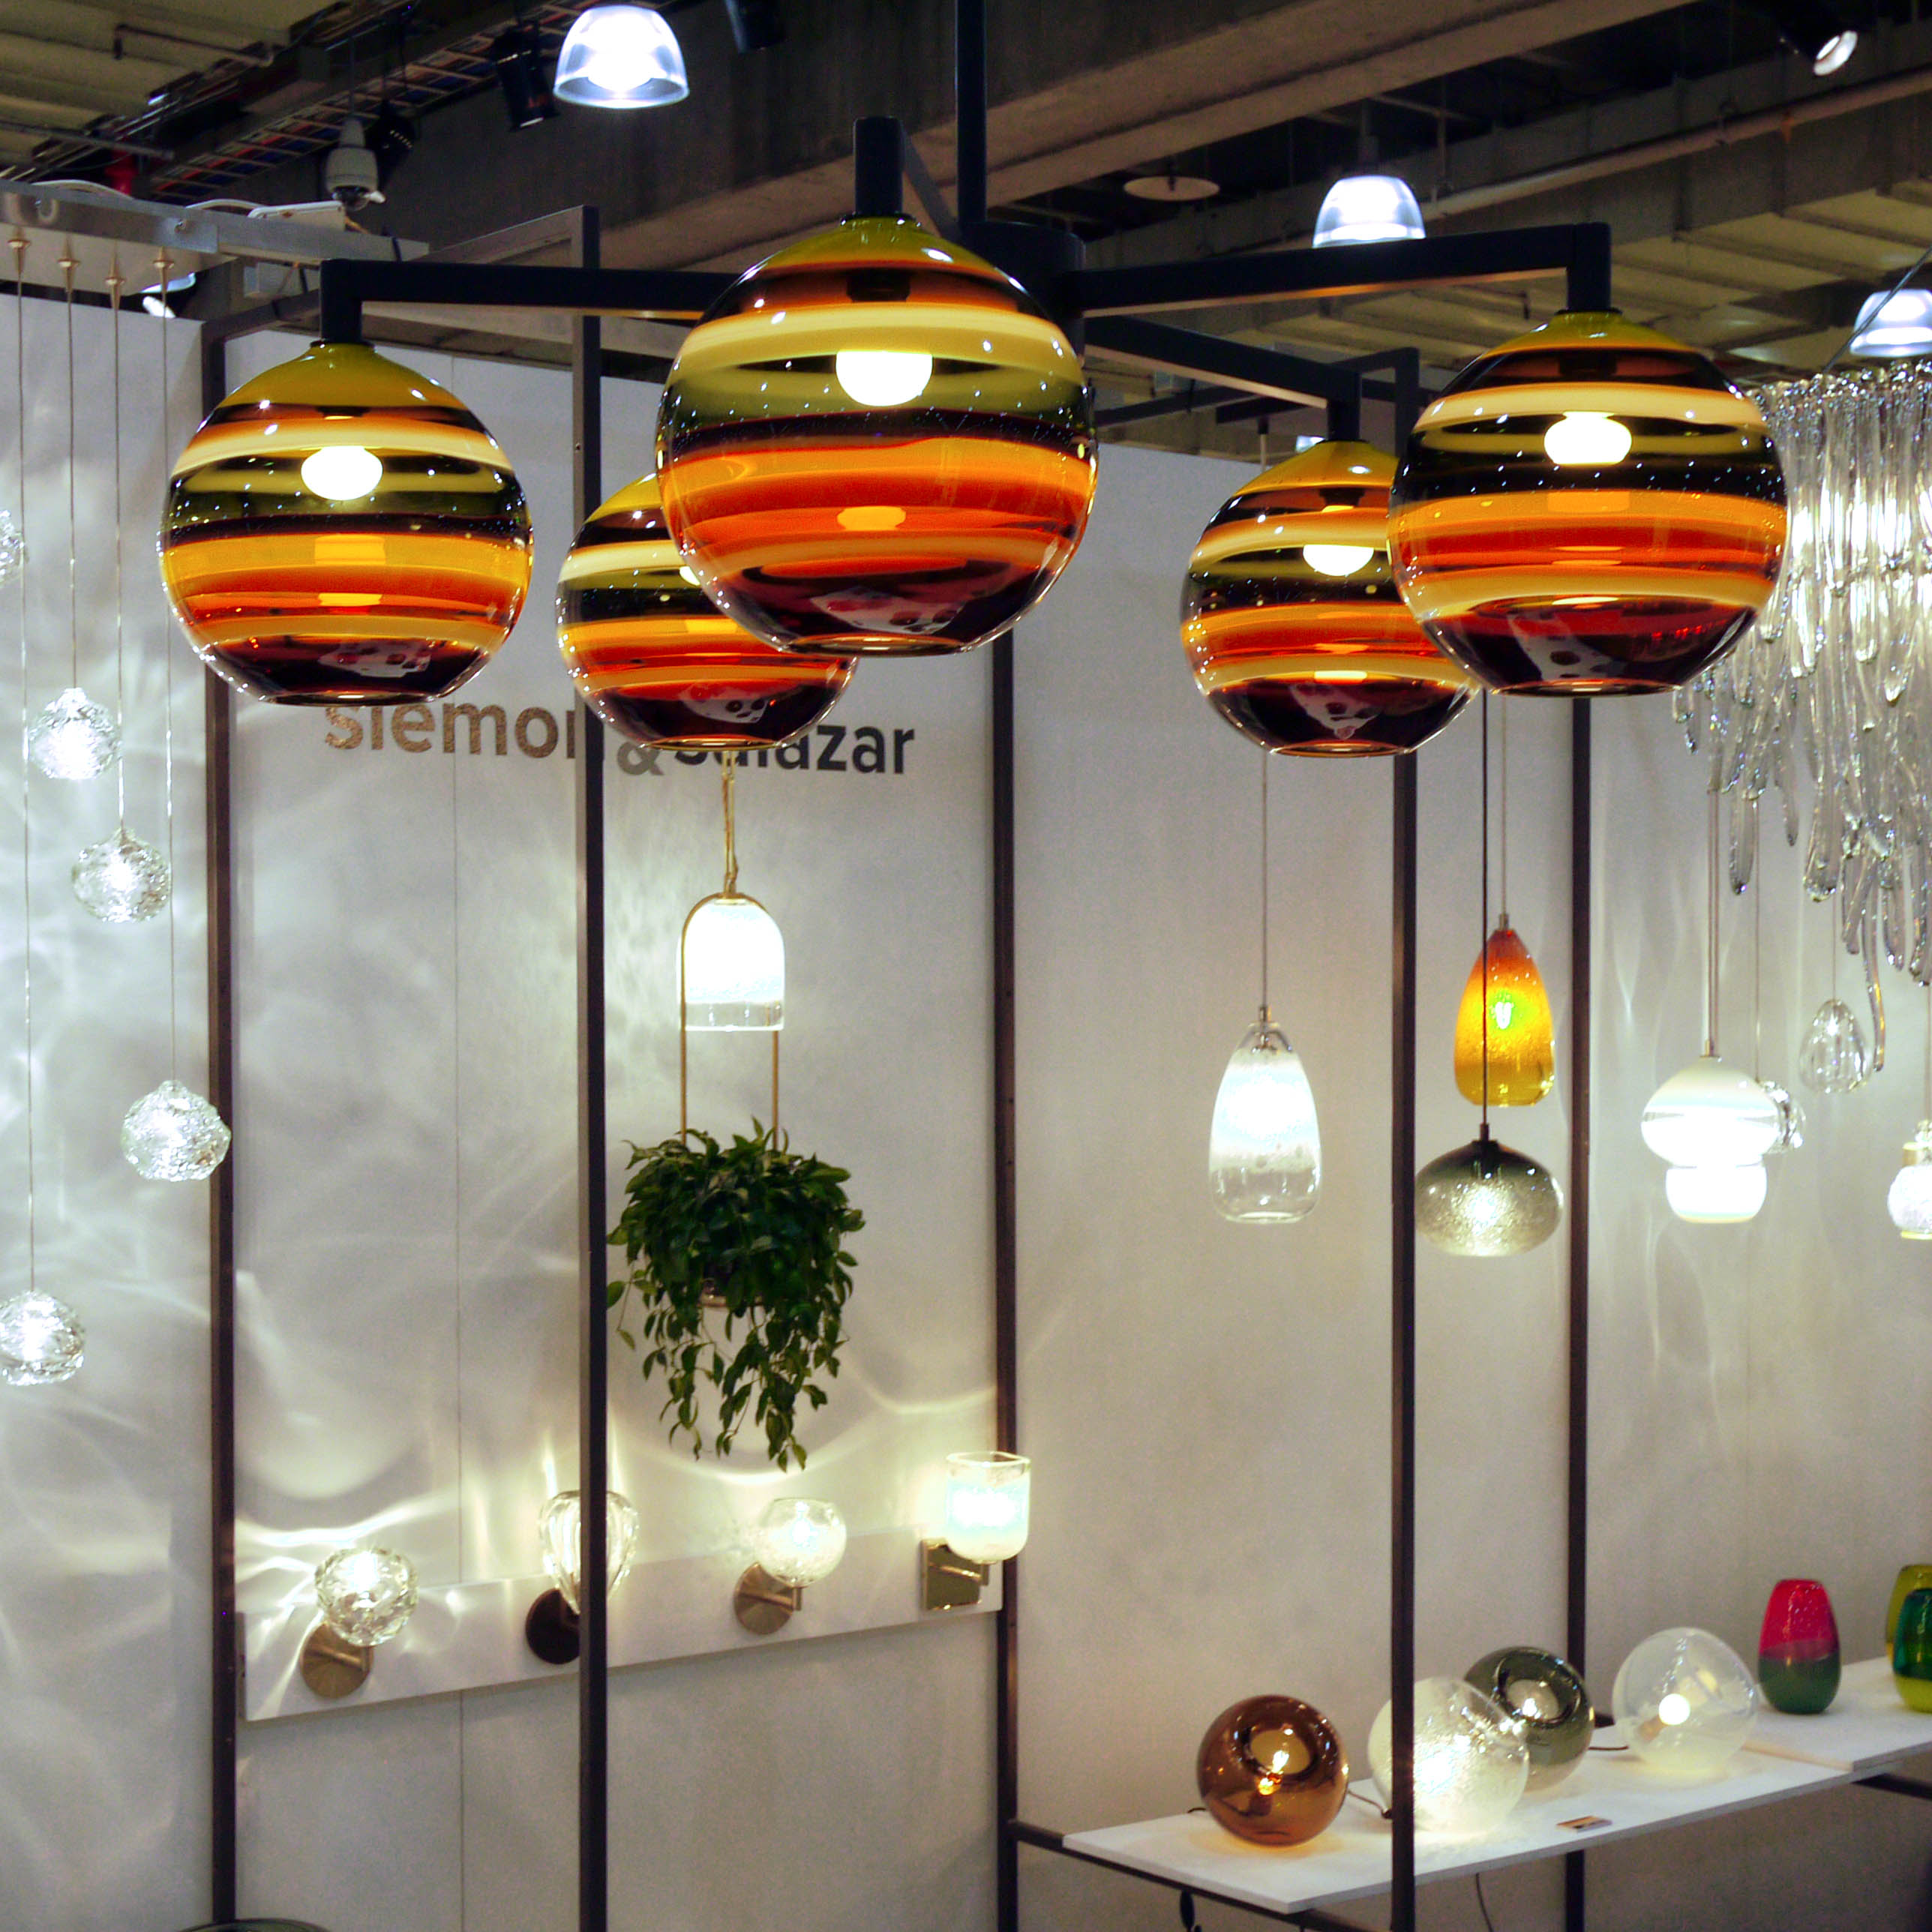 Hand Blown Glass Lighting. Mustard Banded Orb Pendant by siemon and salazar